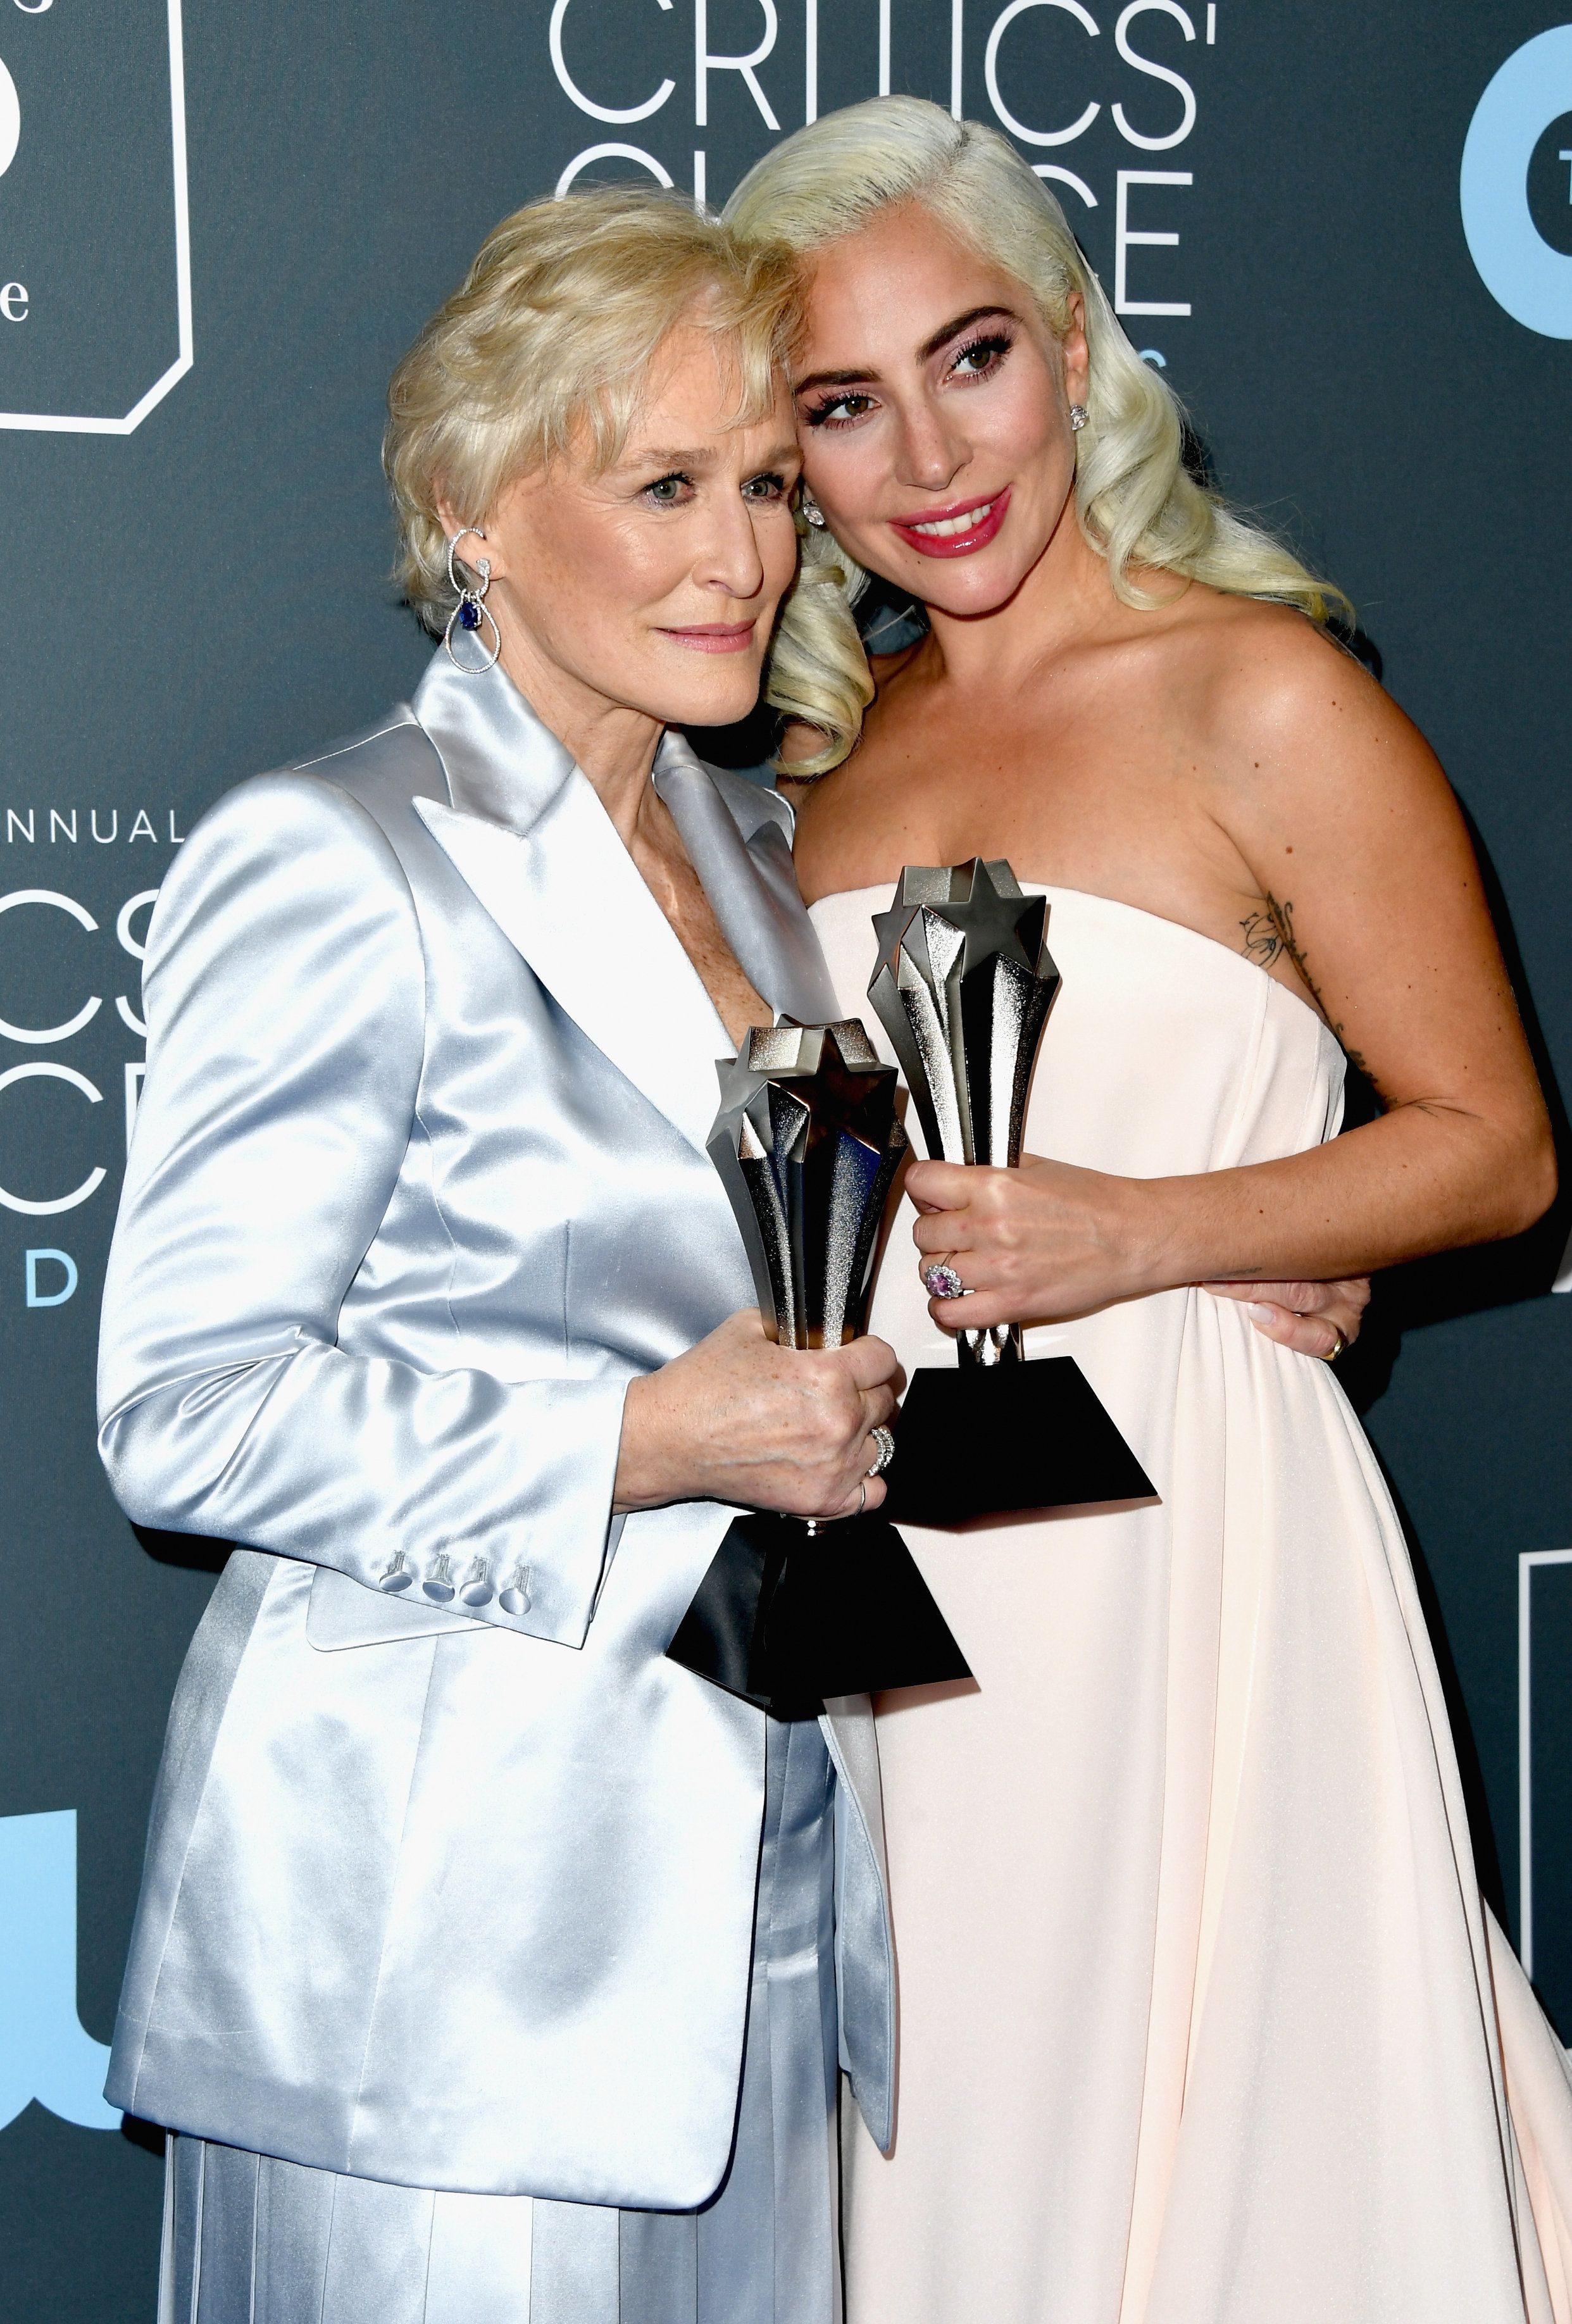 Lady Gaga And Glenn Close Tie For Best Actress Prize At Critics' Choice